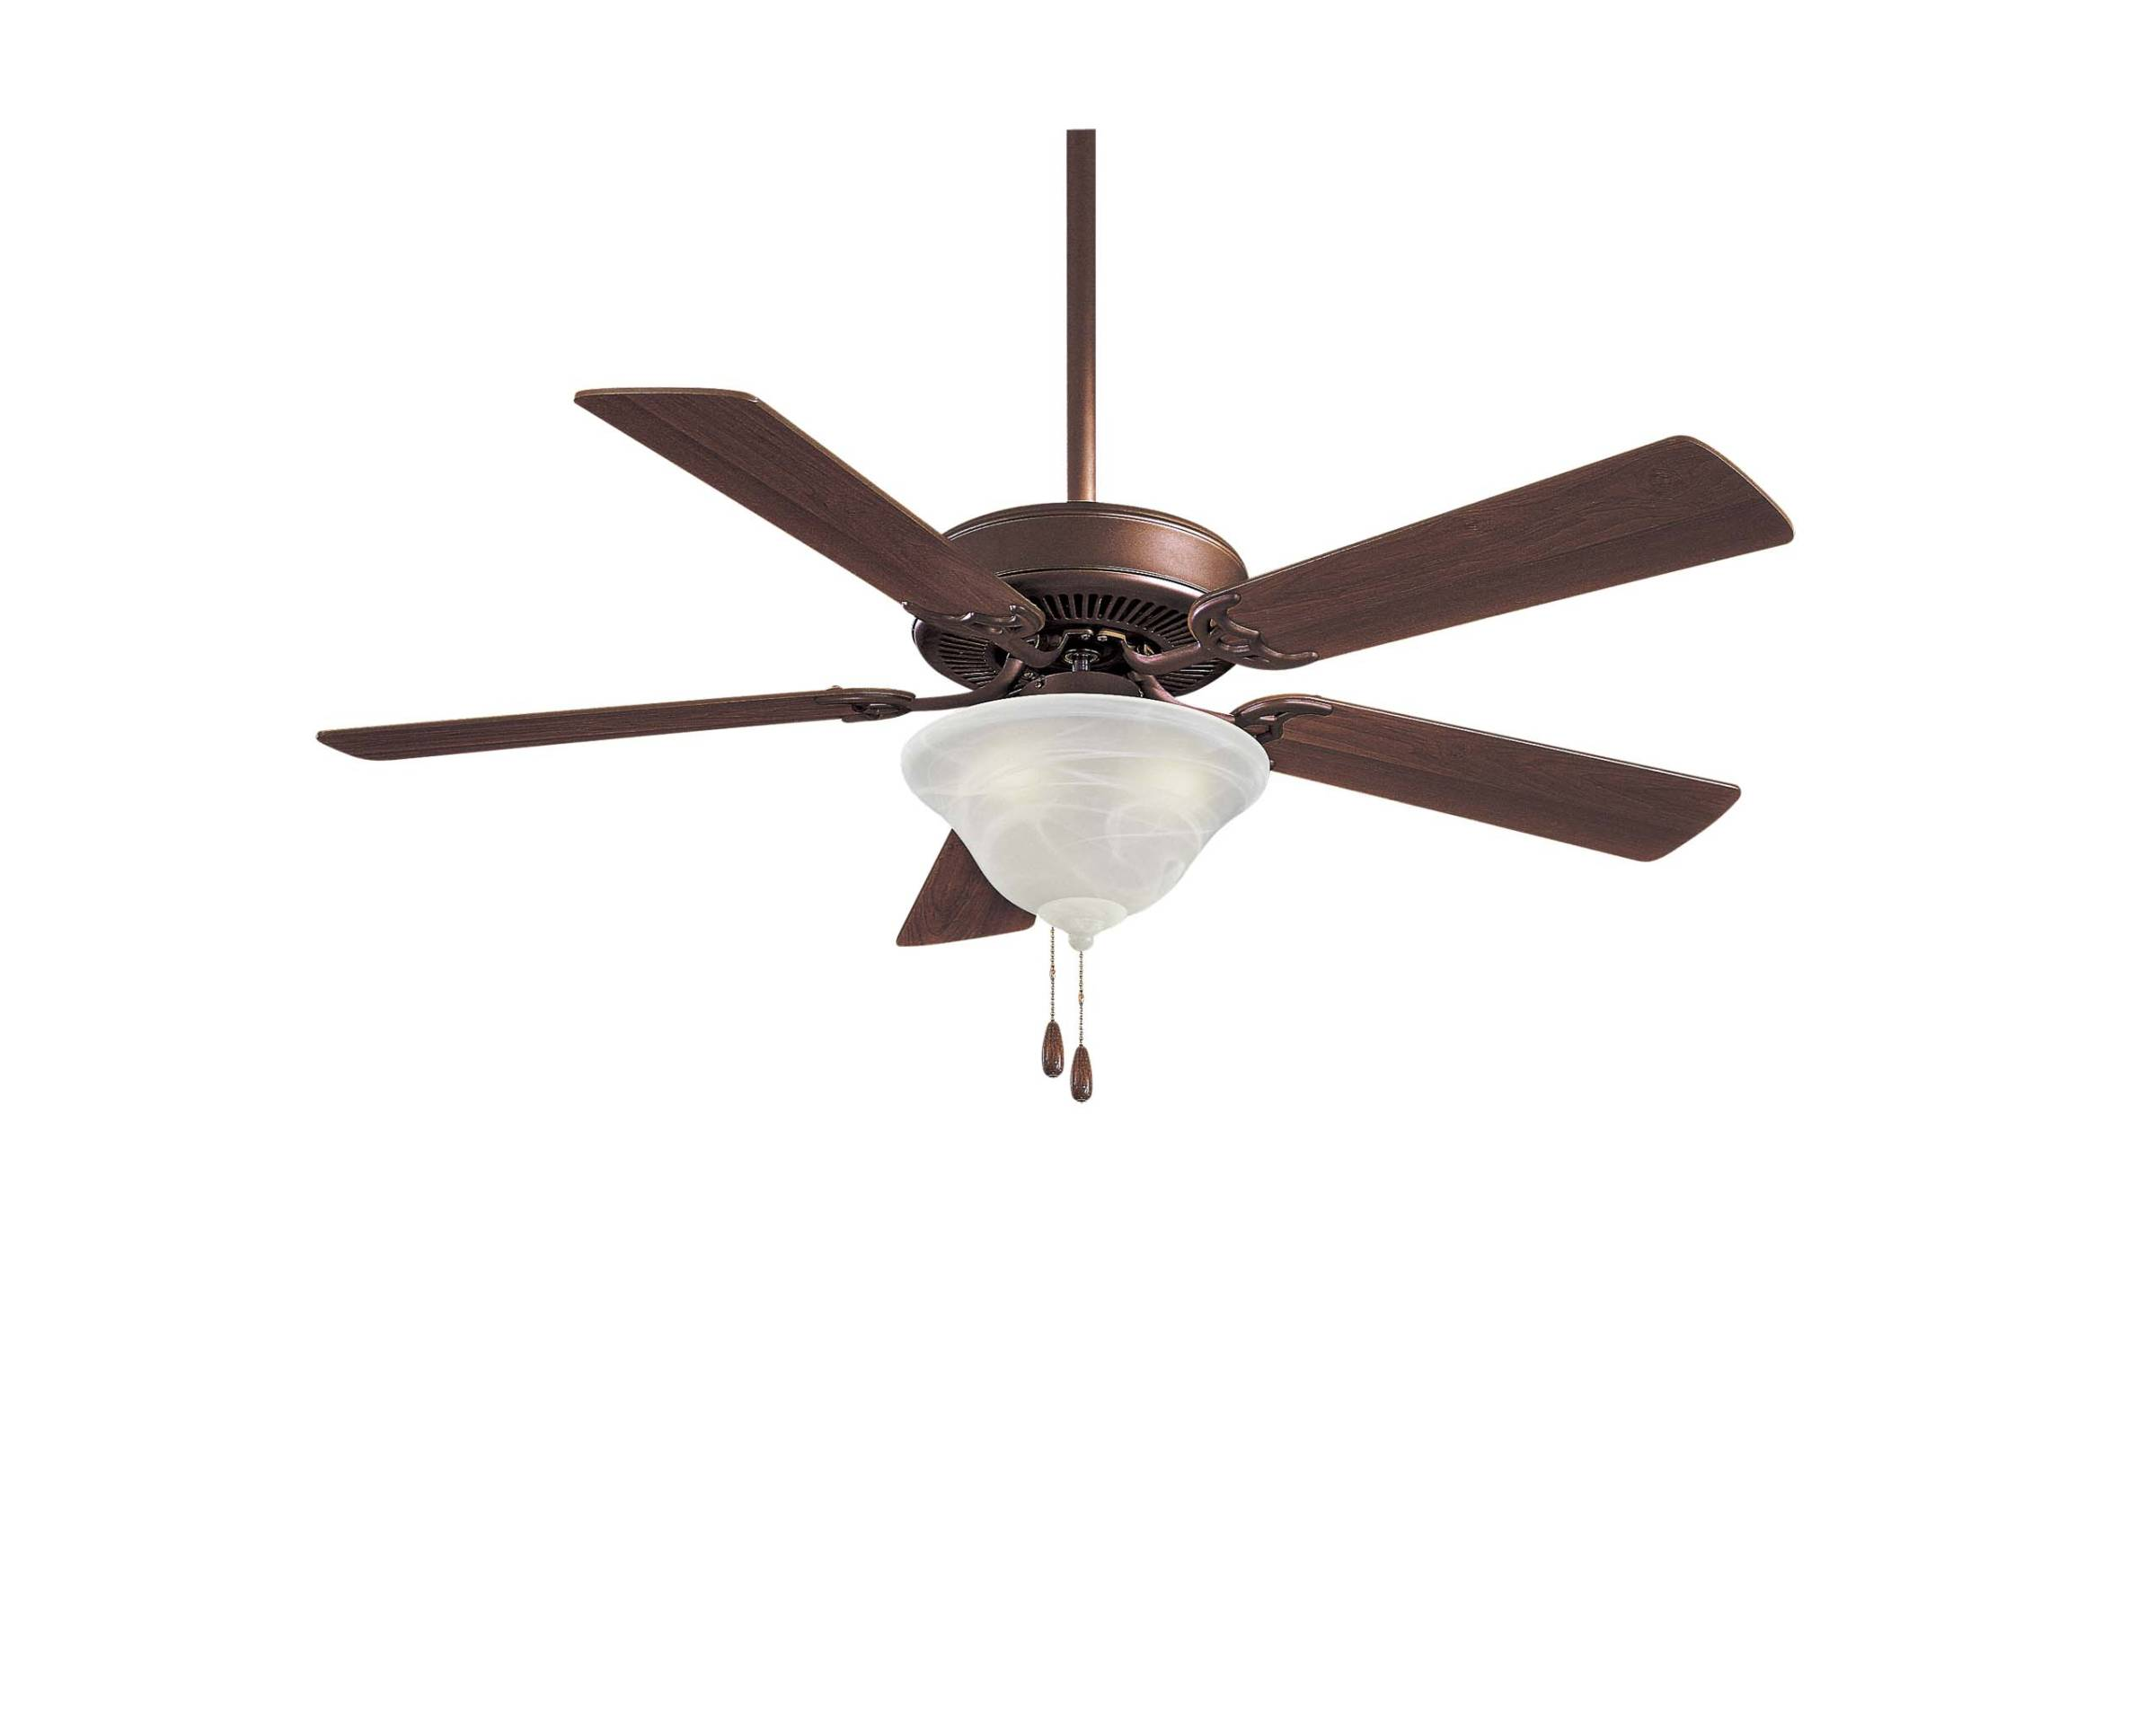 star ceiling fan photo - 2